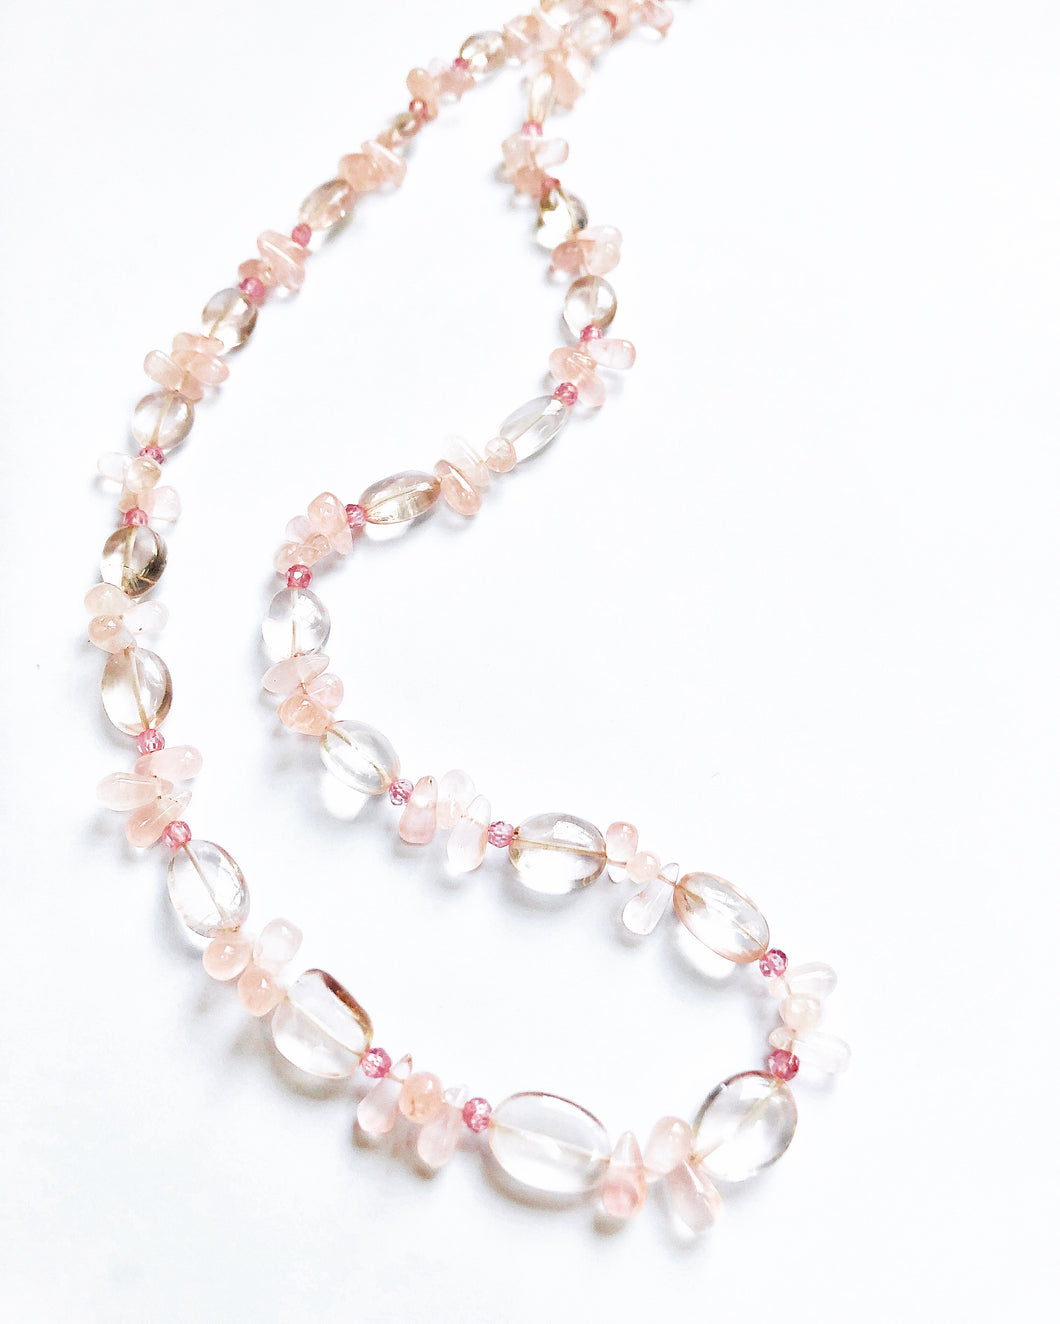 Flows Like Ruffles! Feminine Rose and Pink Quartz Necklace